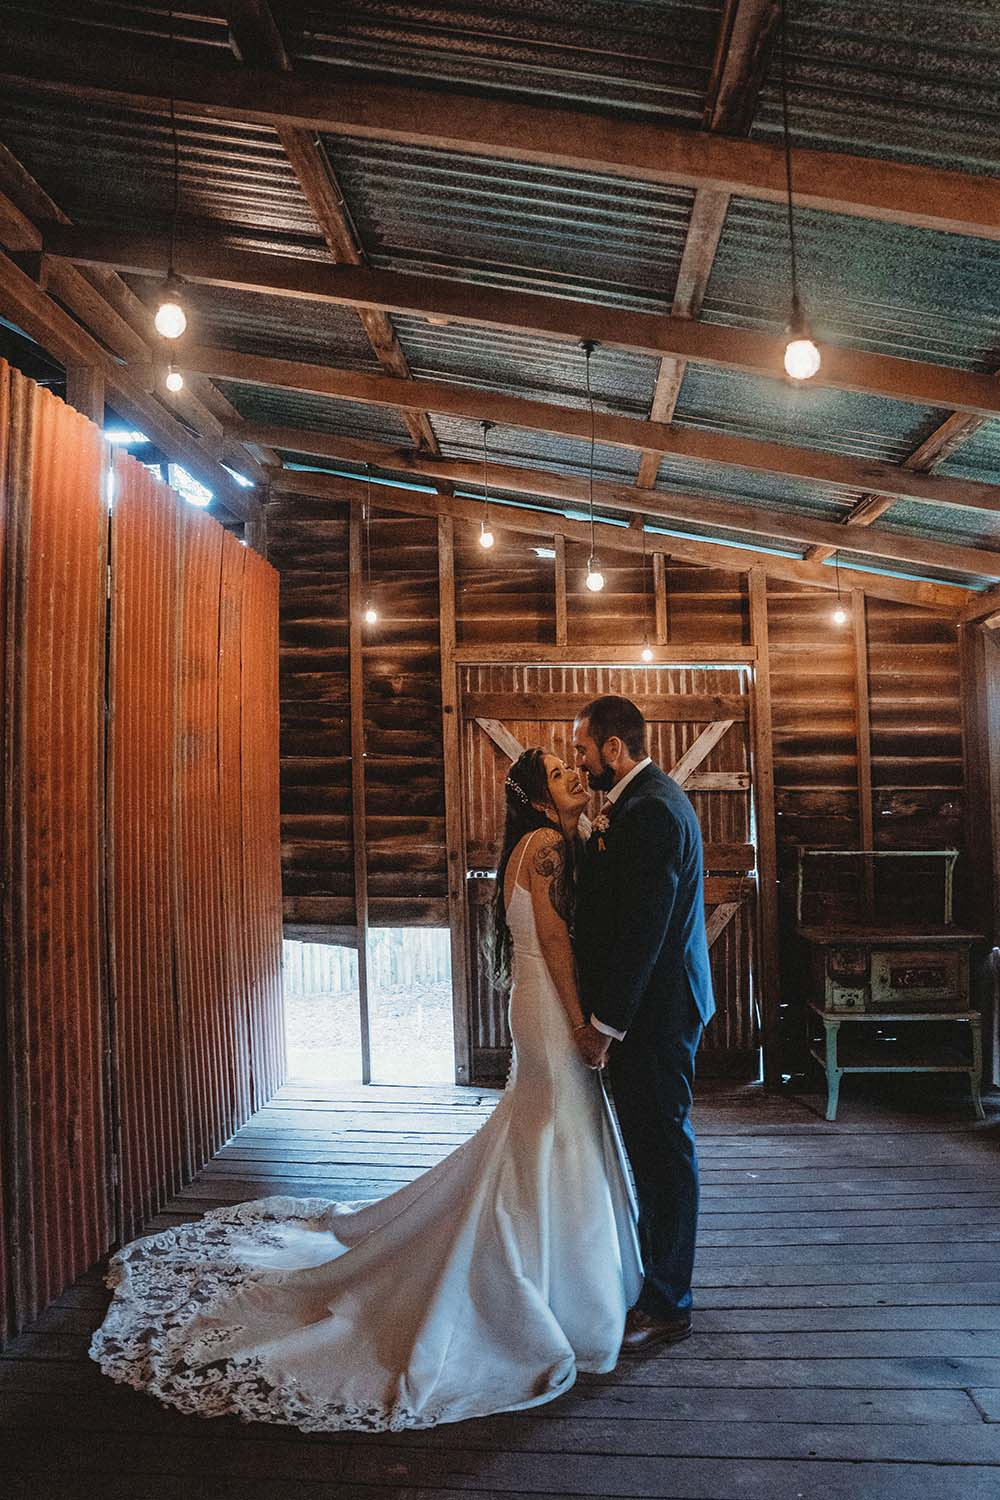 Wedding Photography - Bride and Groom in rustic room